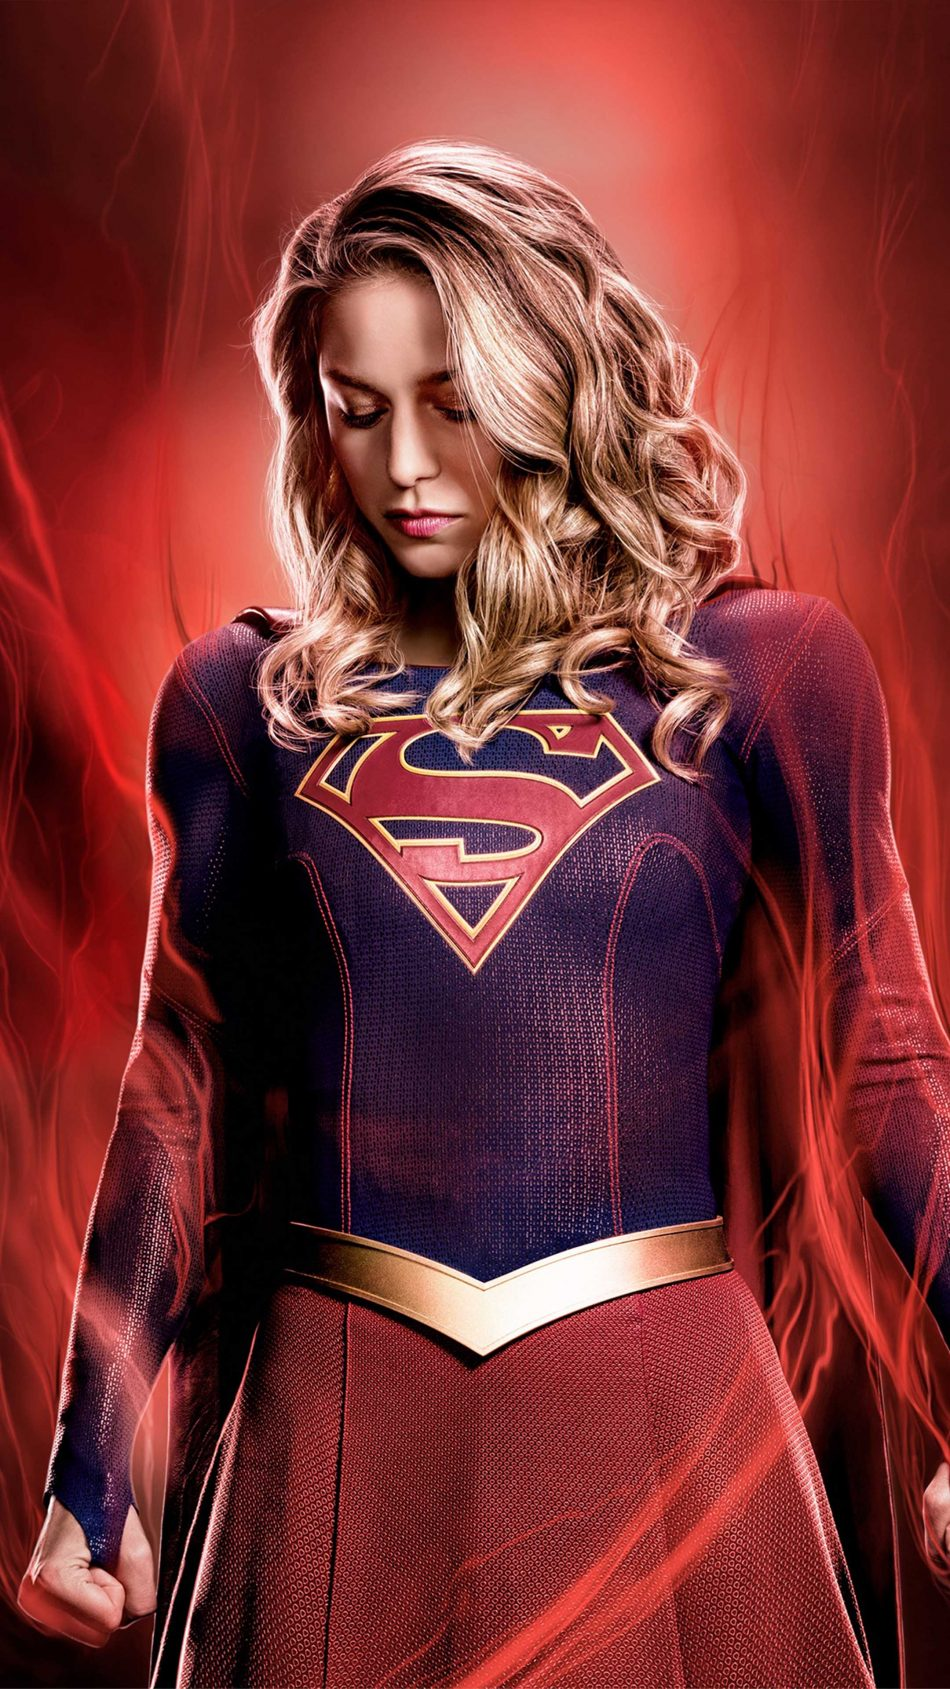 Melissa Benoist As Supergirl 4K Ultra HD Mobile Wallpaper